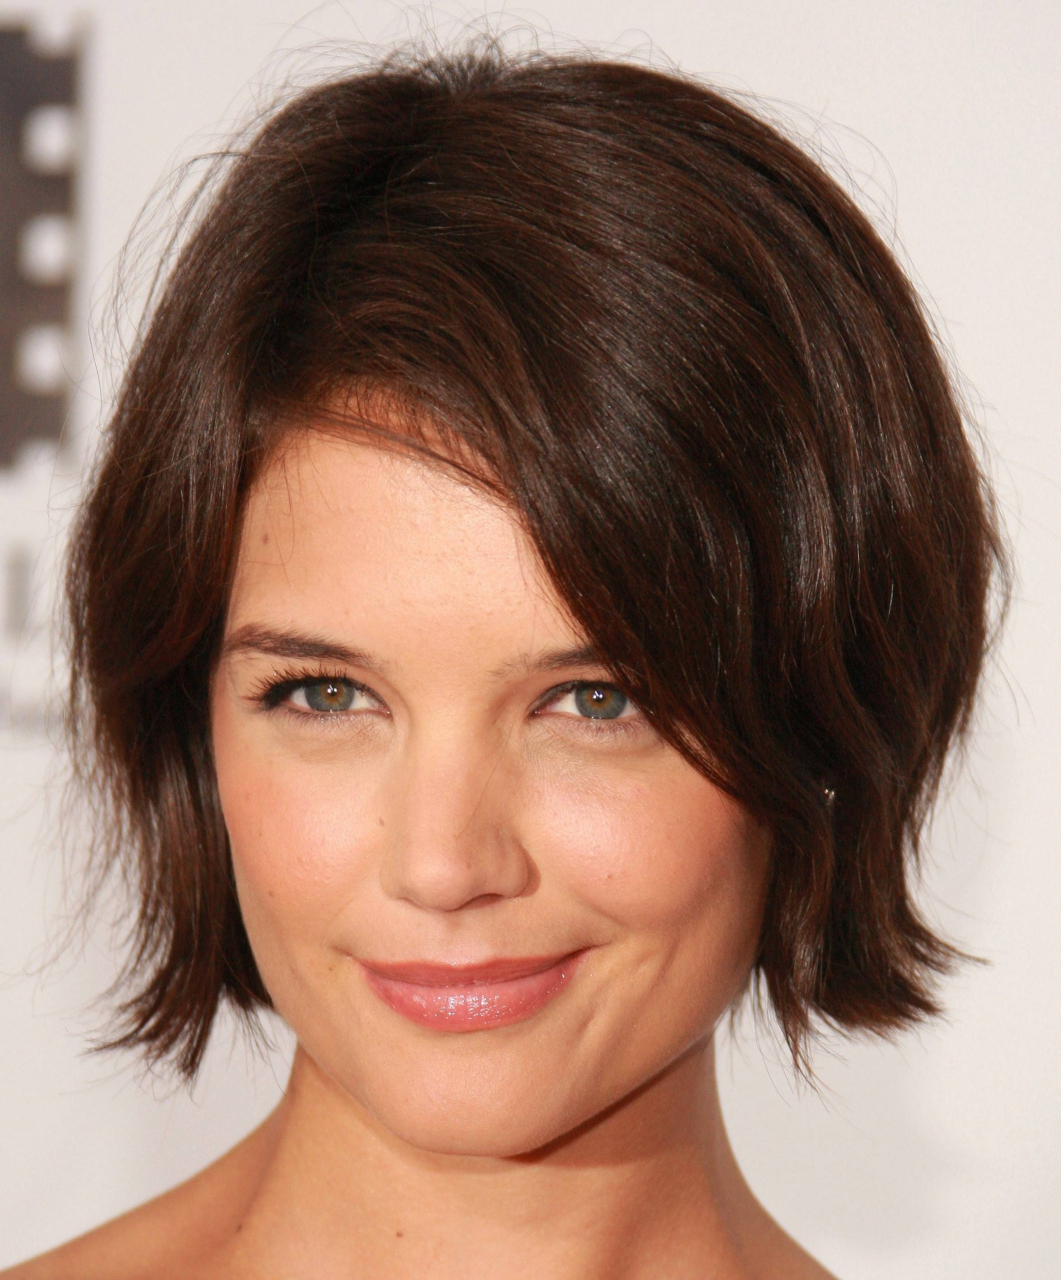 99 Short Hairstyles For Round Faces With Double Chin Best Of Best In Short Hairstyles For Round Faces With Double Chin (View 18 of 25)